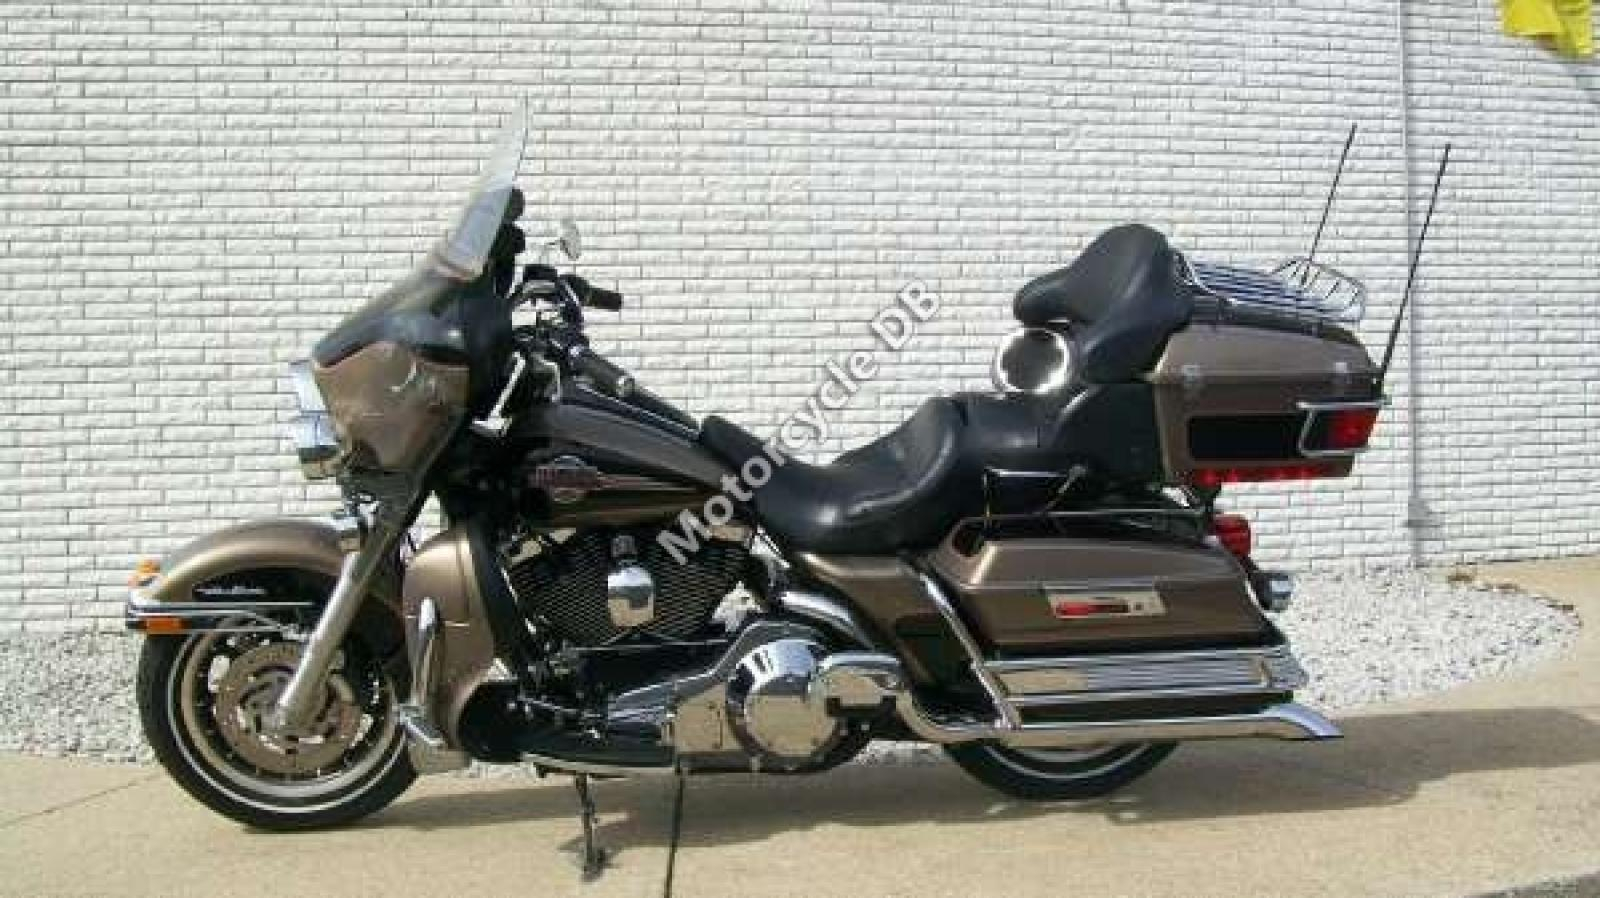 Harley-Davidson FLHTC 1340 Electra Glide Classic images #79928